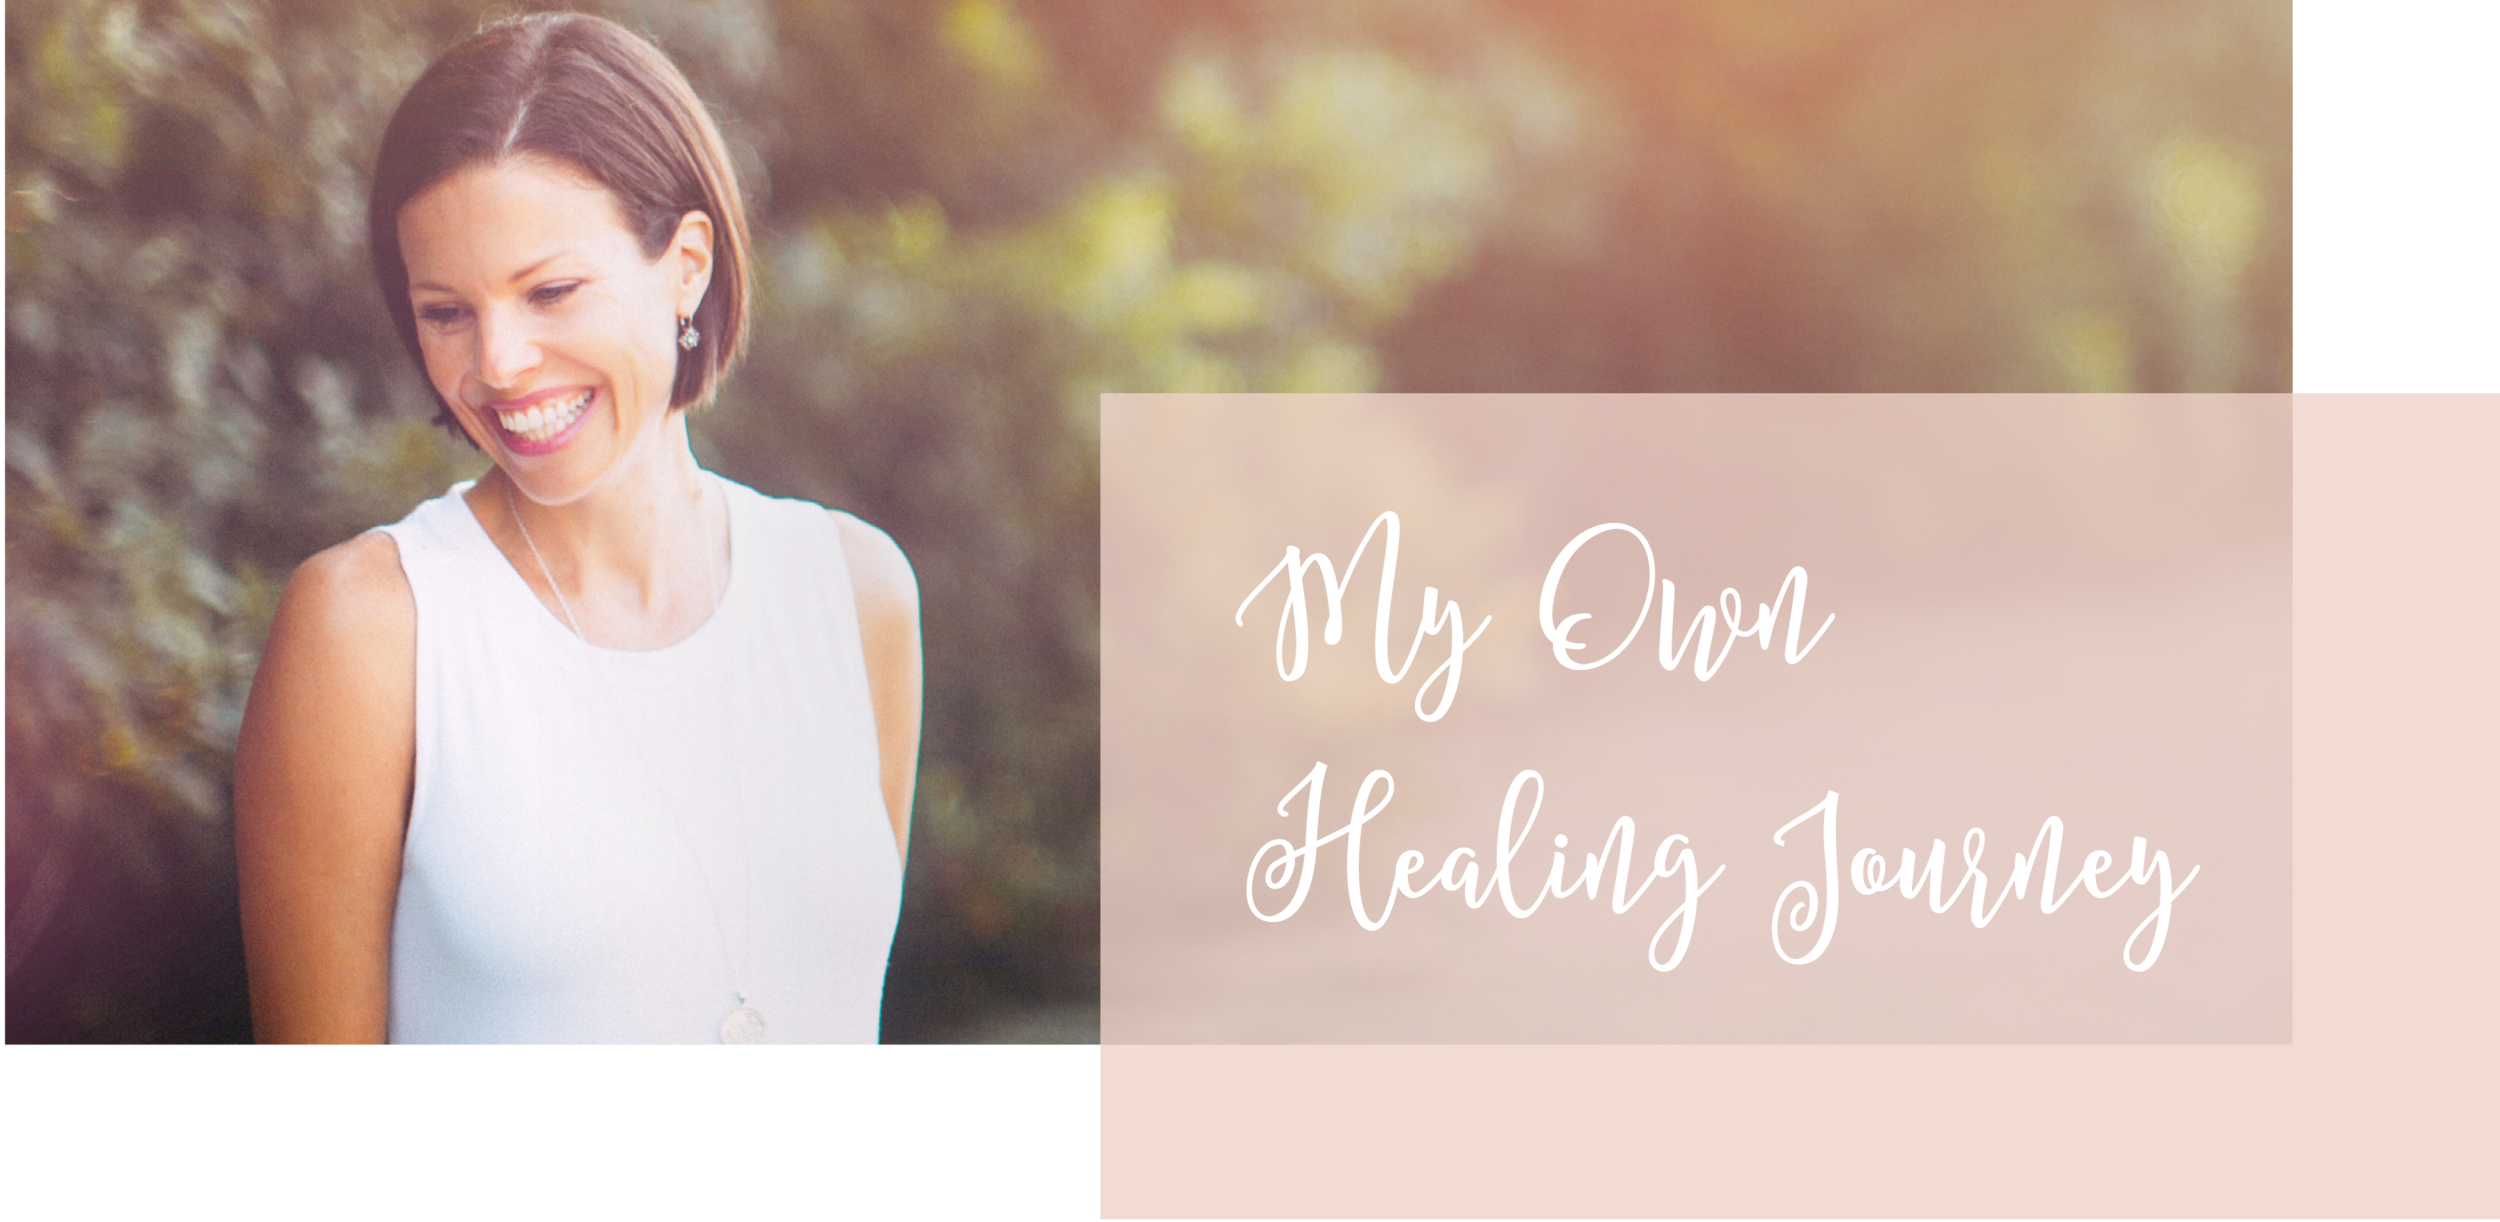 angie viets - healing journey-hp-03.png